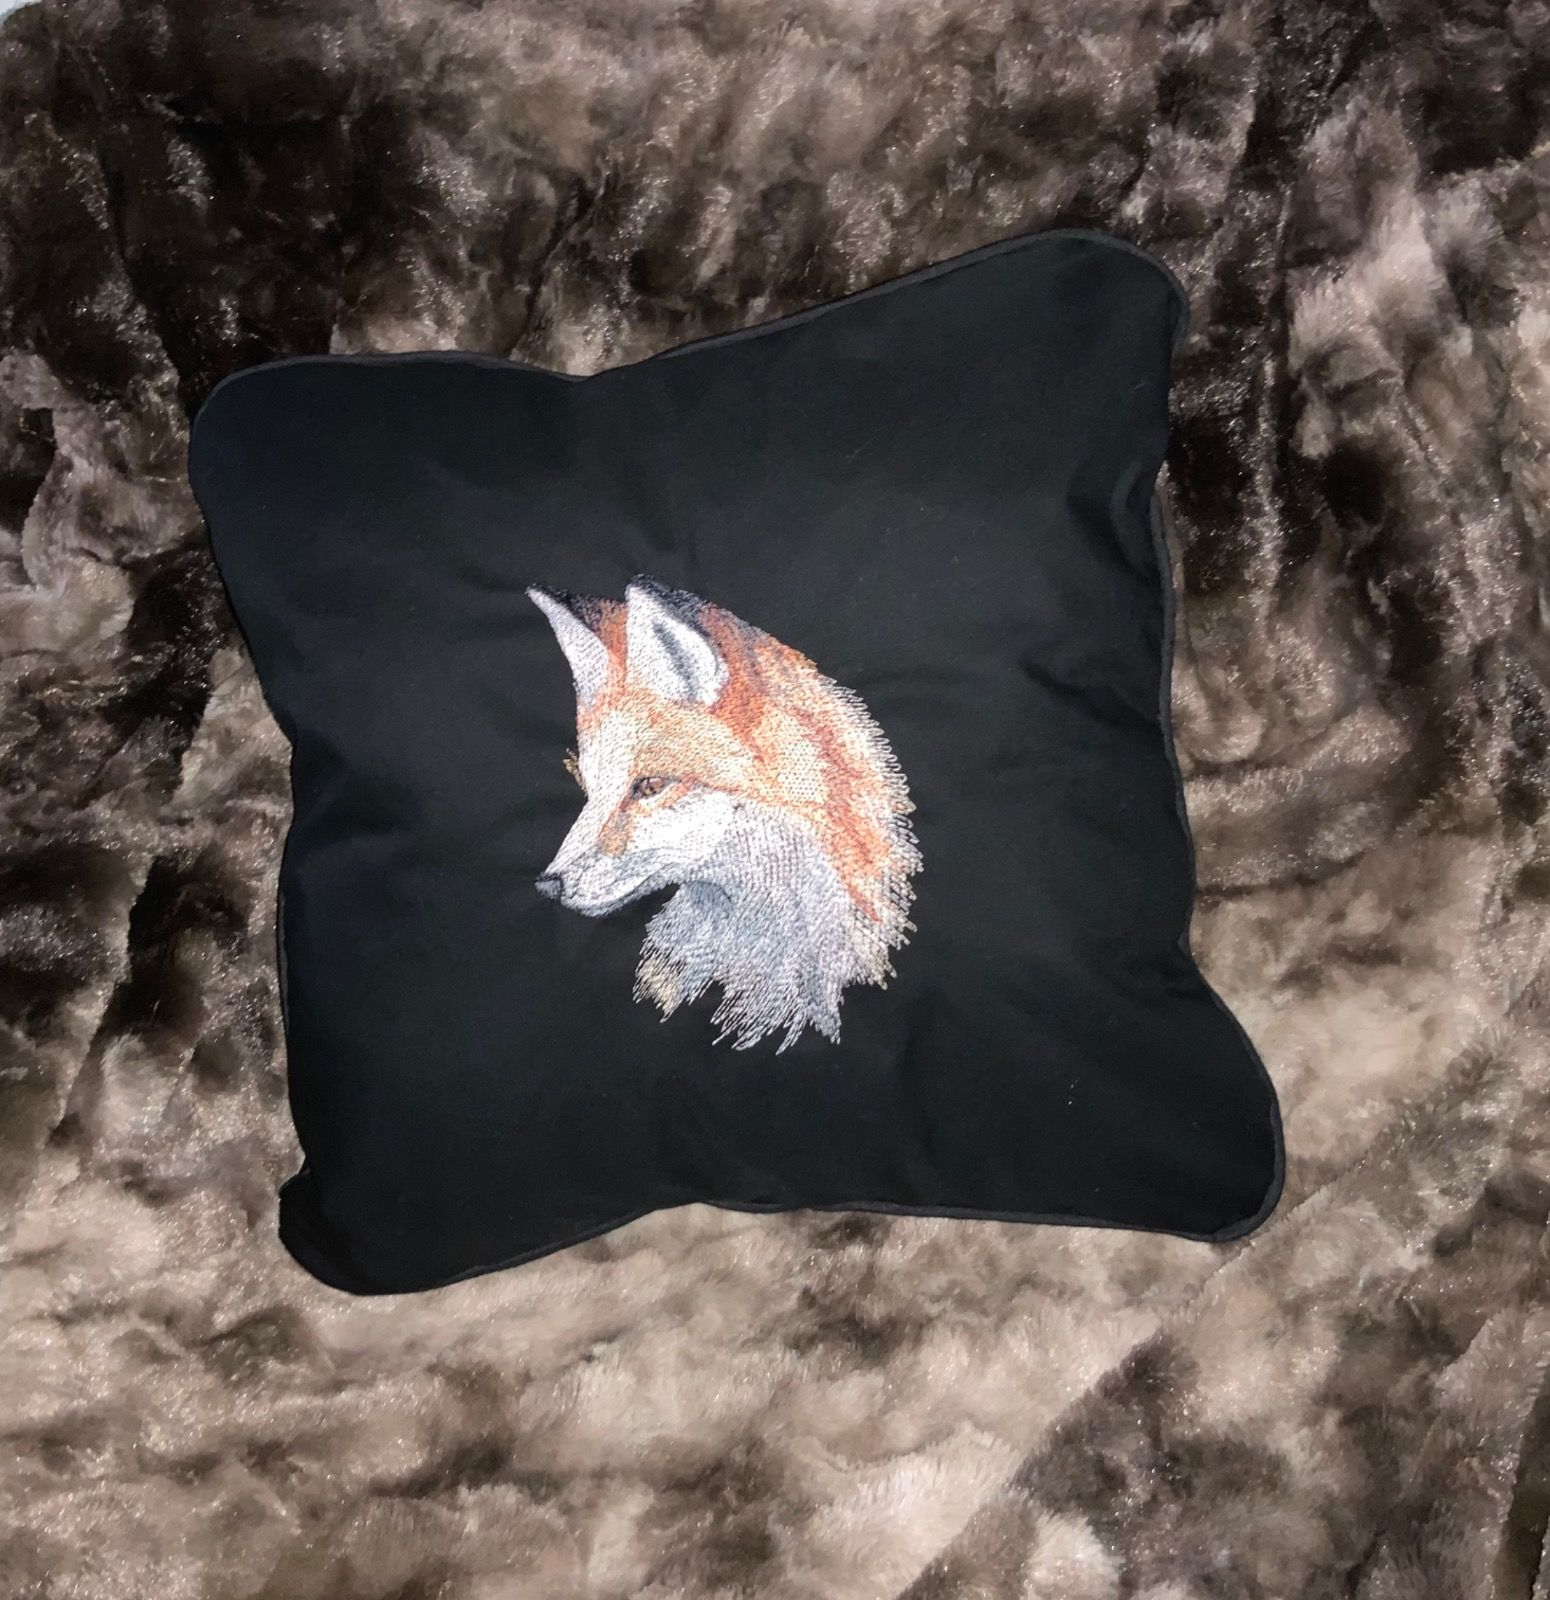 Embroidered Fox on Handmade Black Cushion with Piped Edges